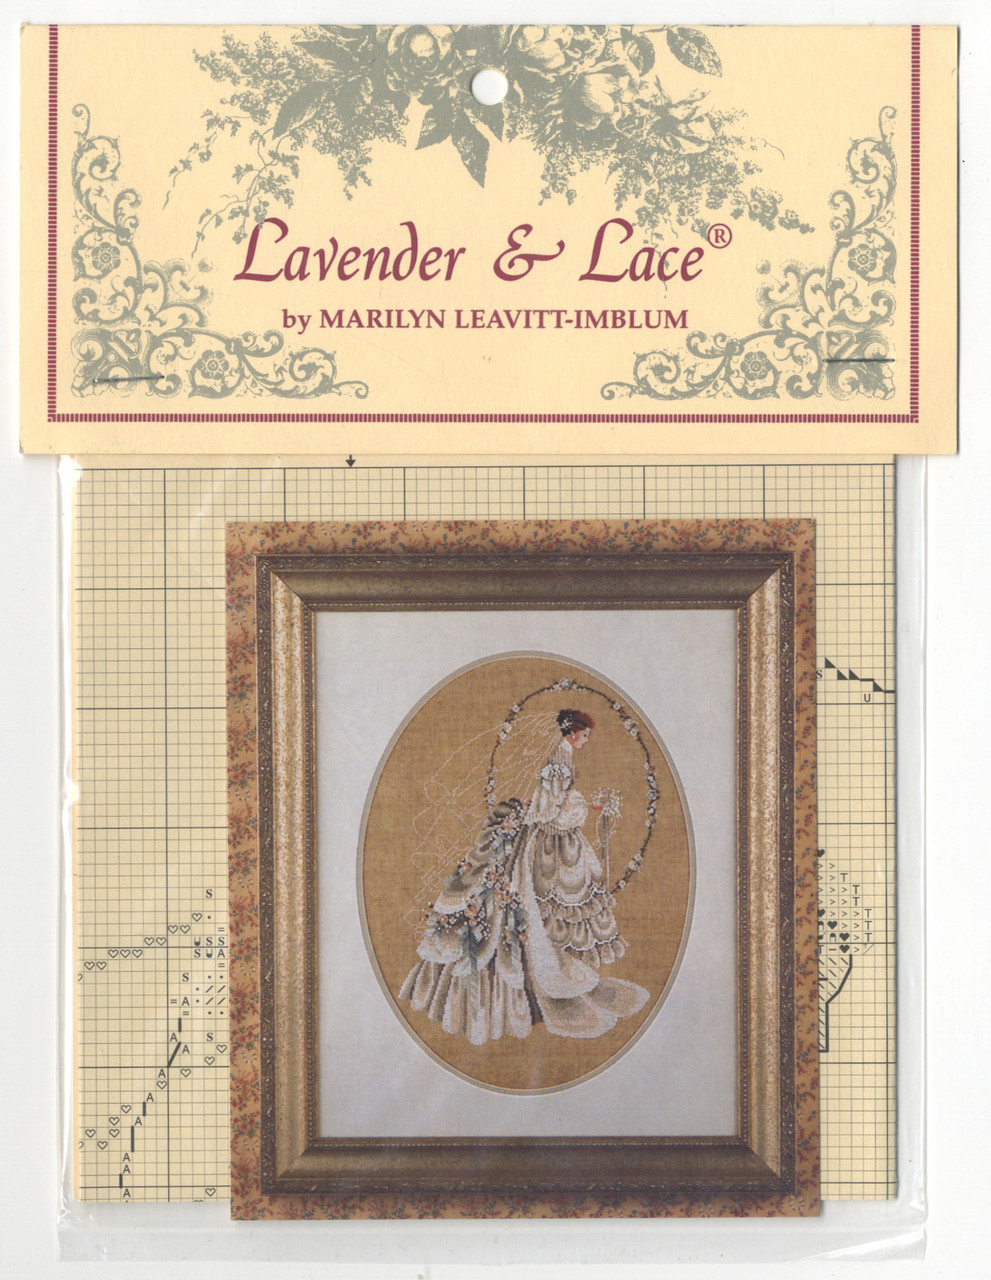 Lavender & Lace - The Bride (or Victorian Lady)